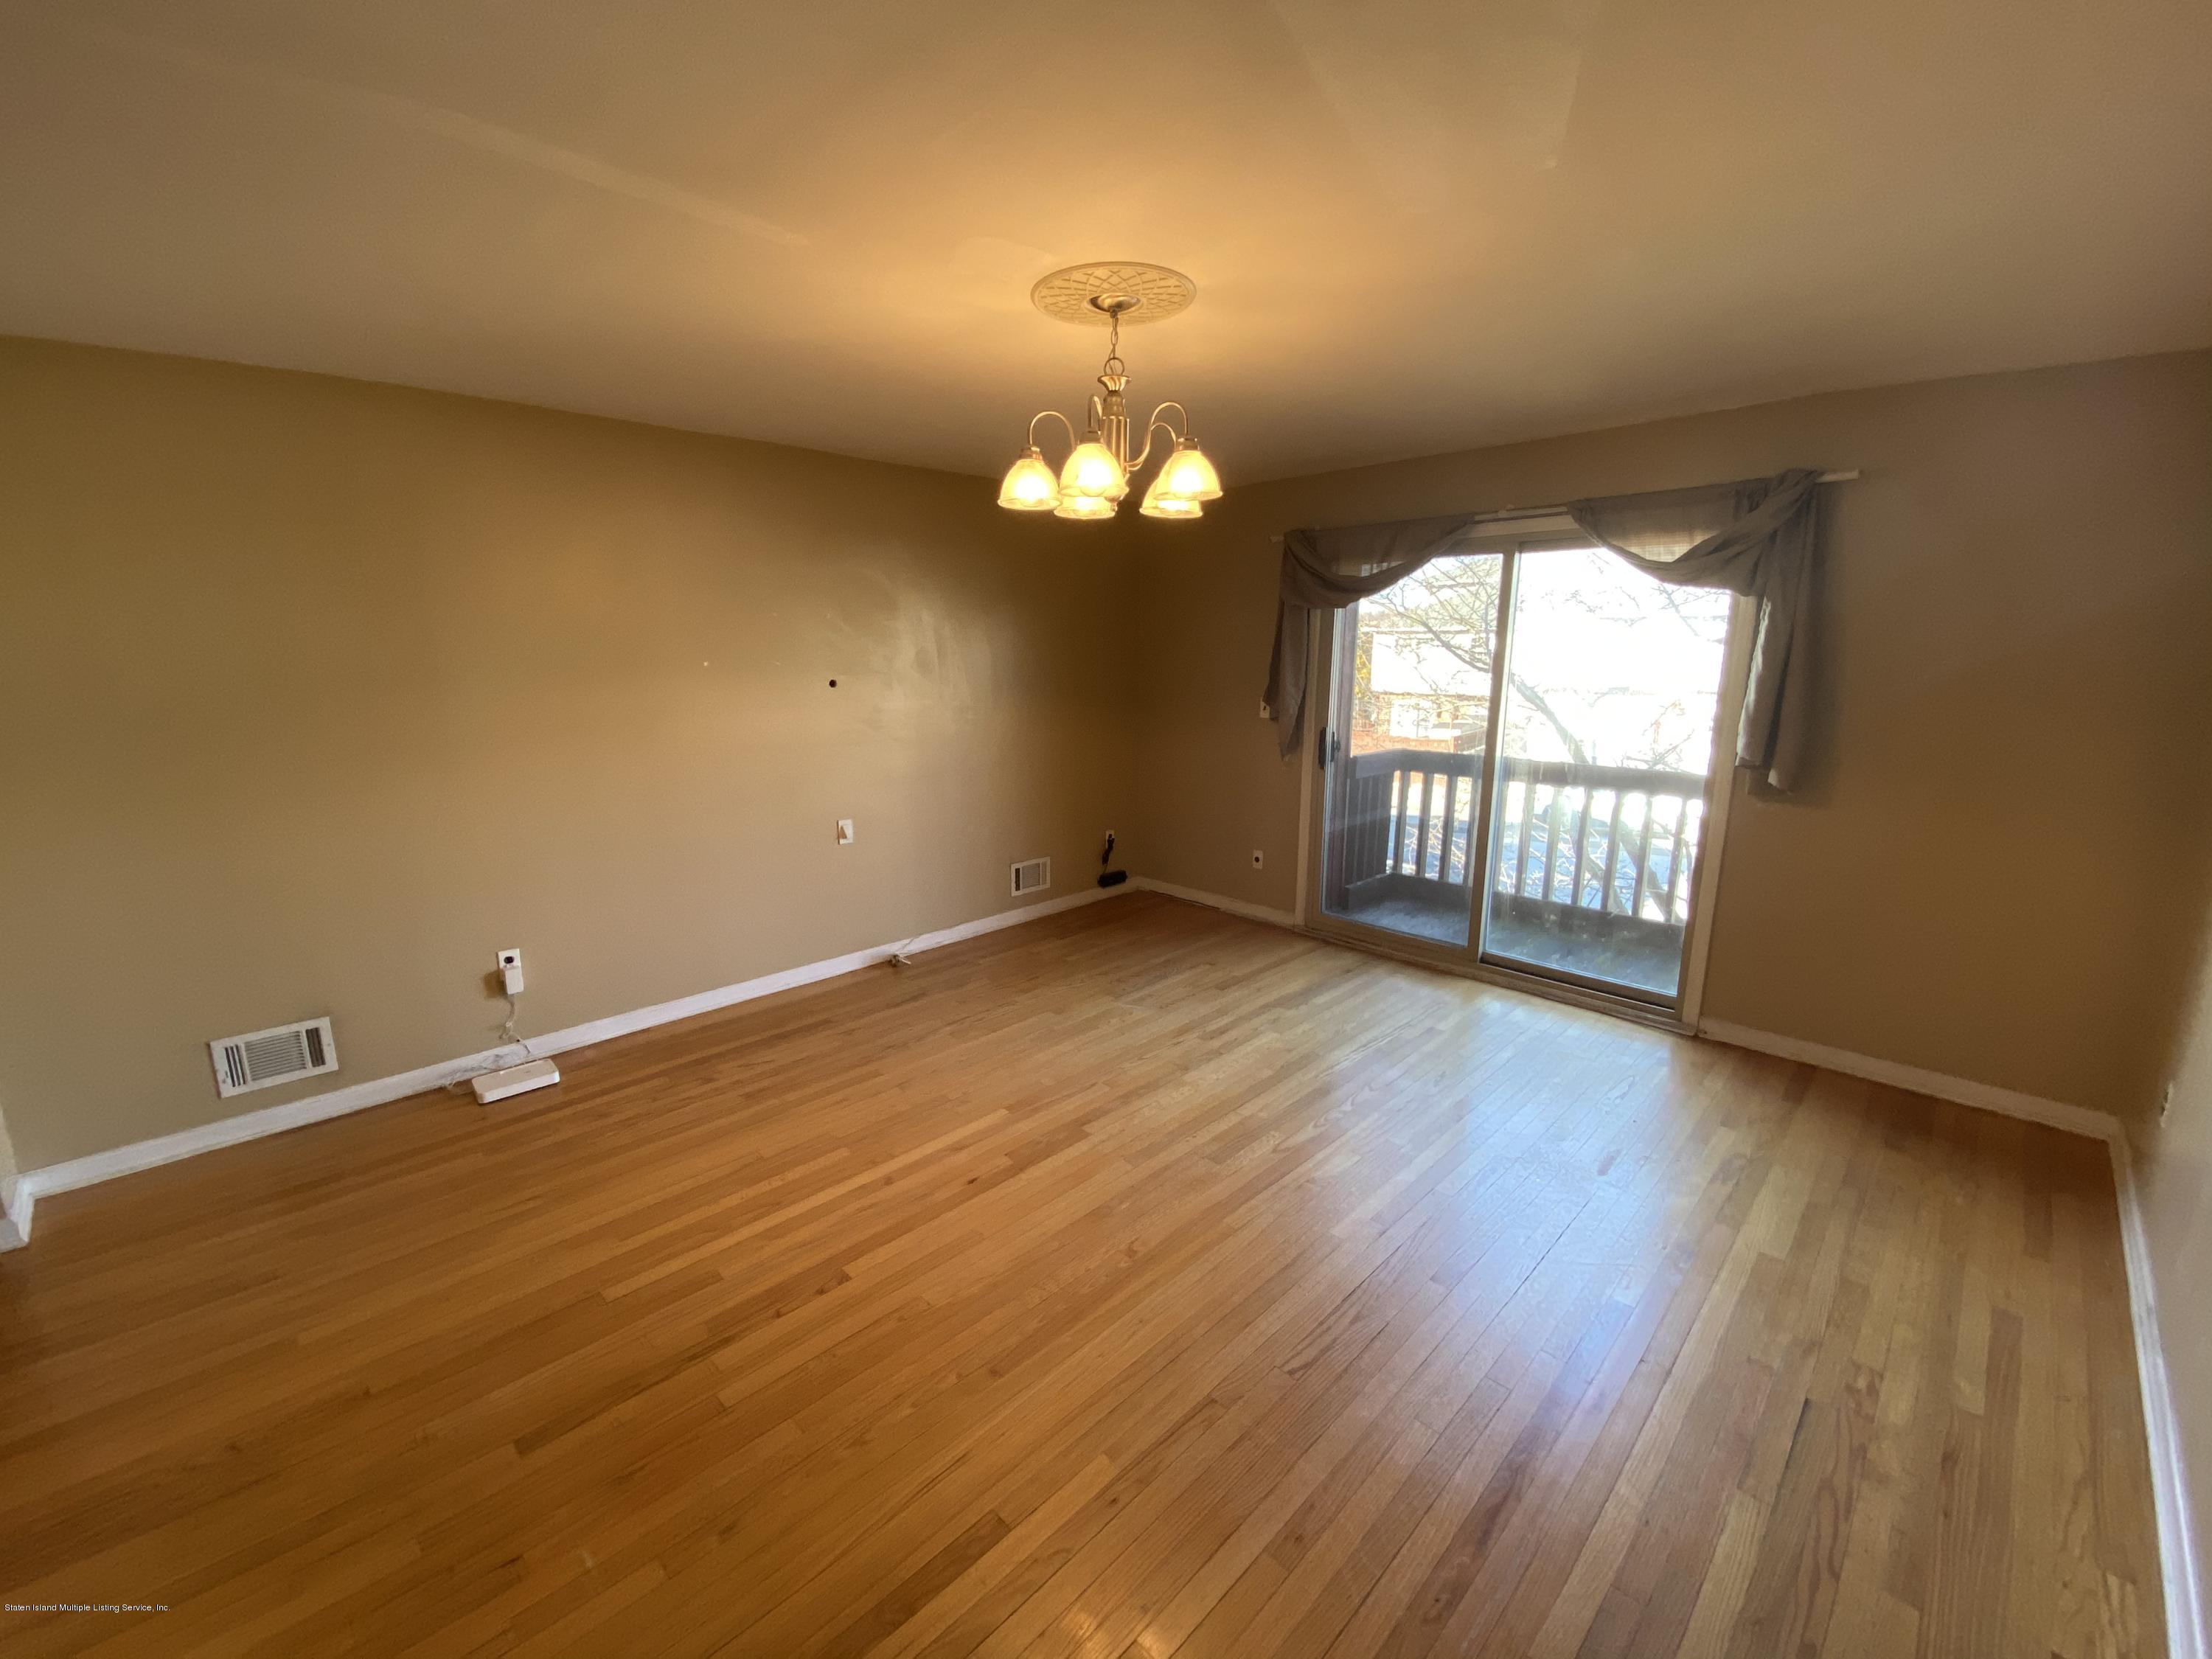 Single Family - Attached 118 Braisted Avenue  Staten Island, NY 10314, MLS-1135869-6